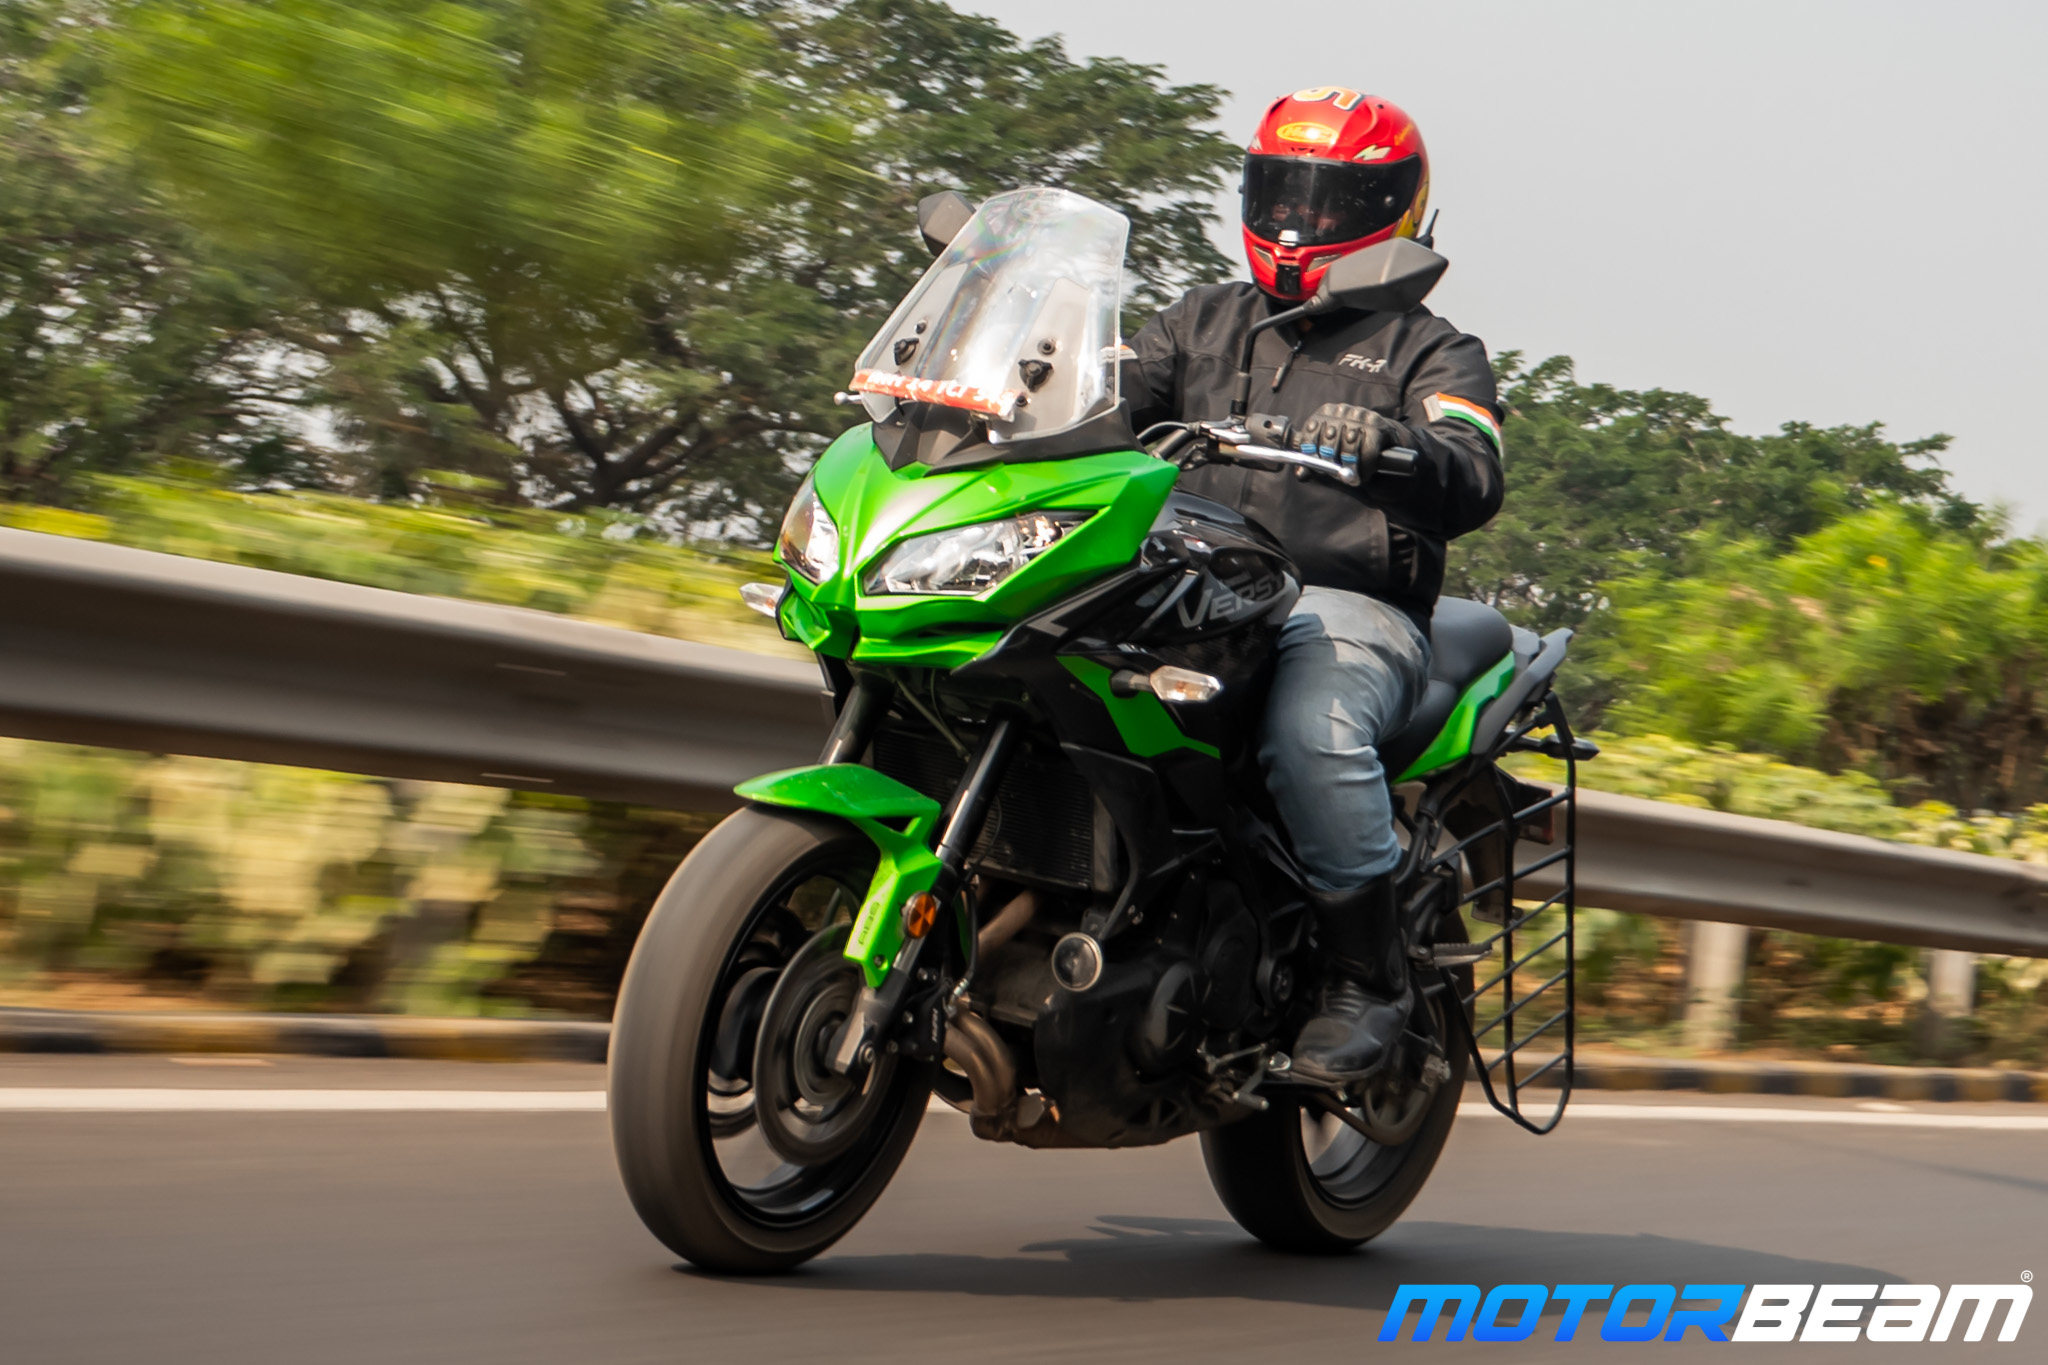 2021 Kawasaki Versys 650 Review 34